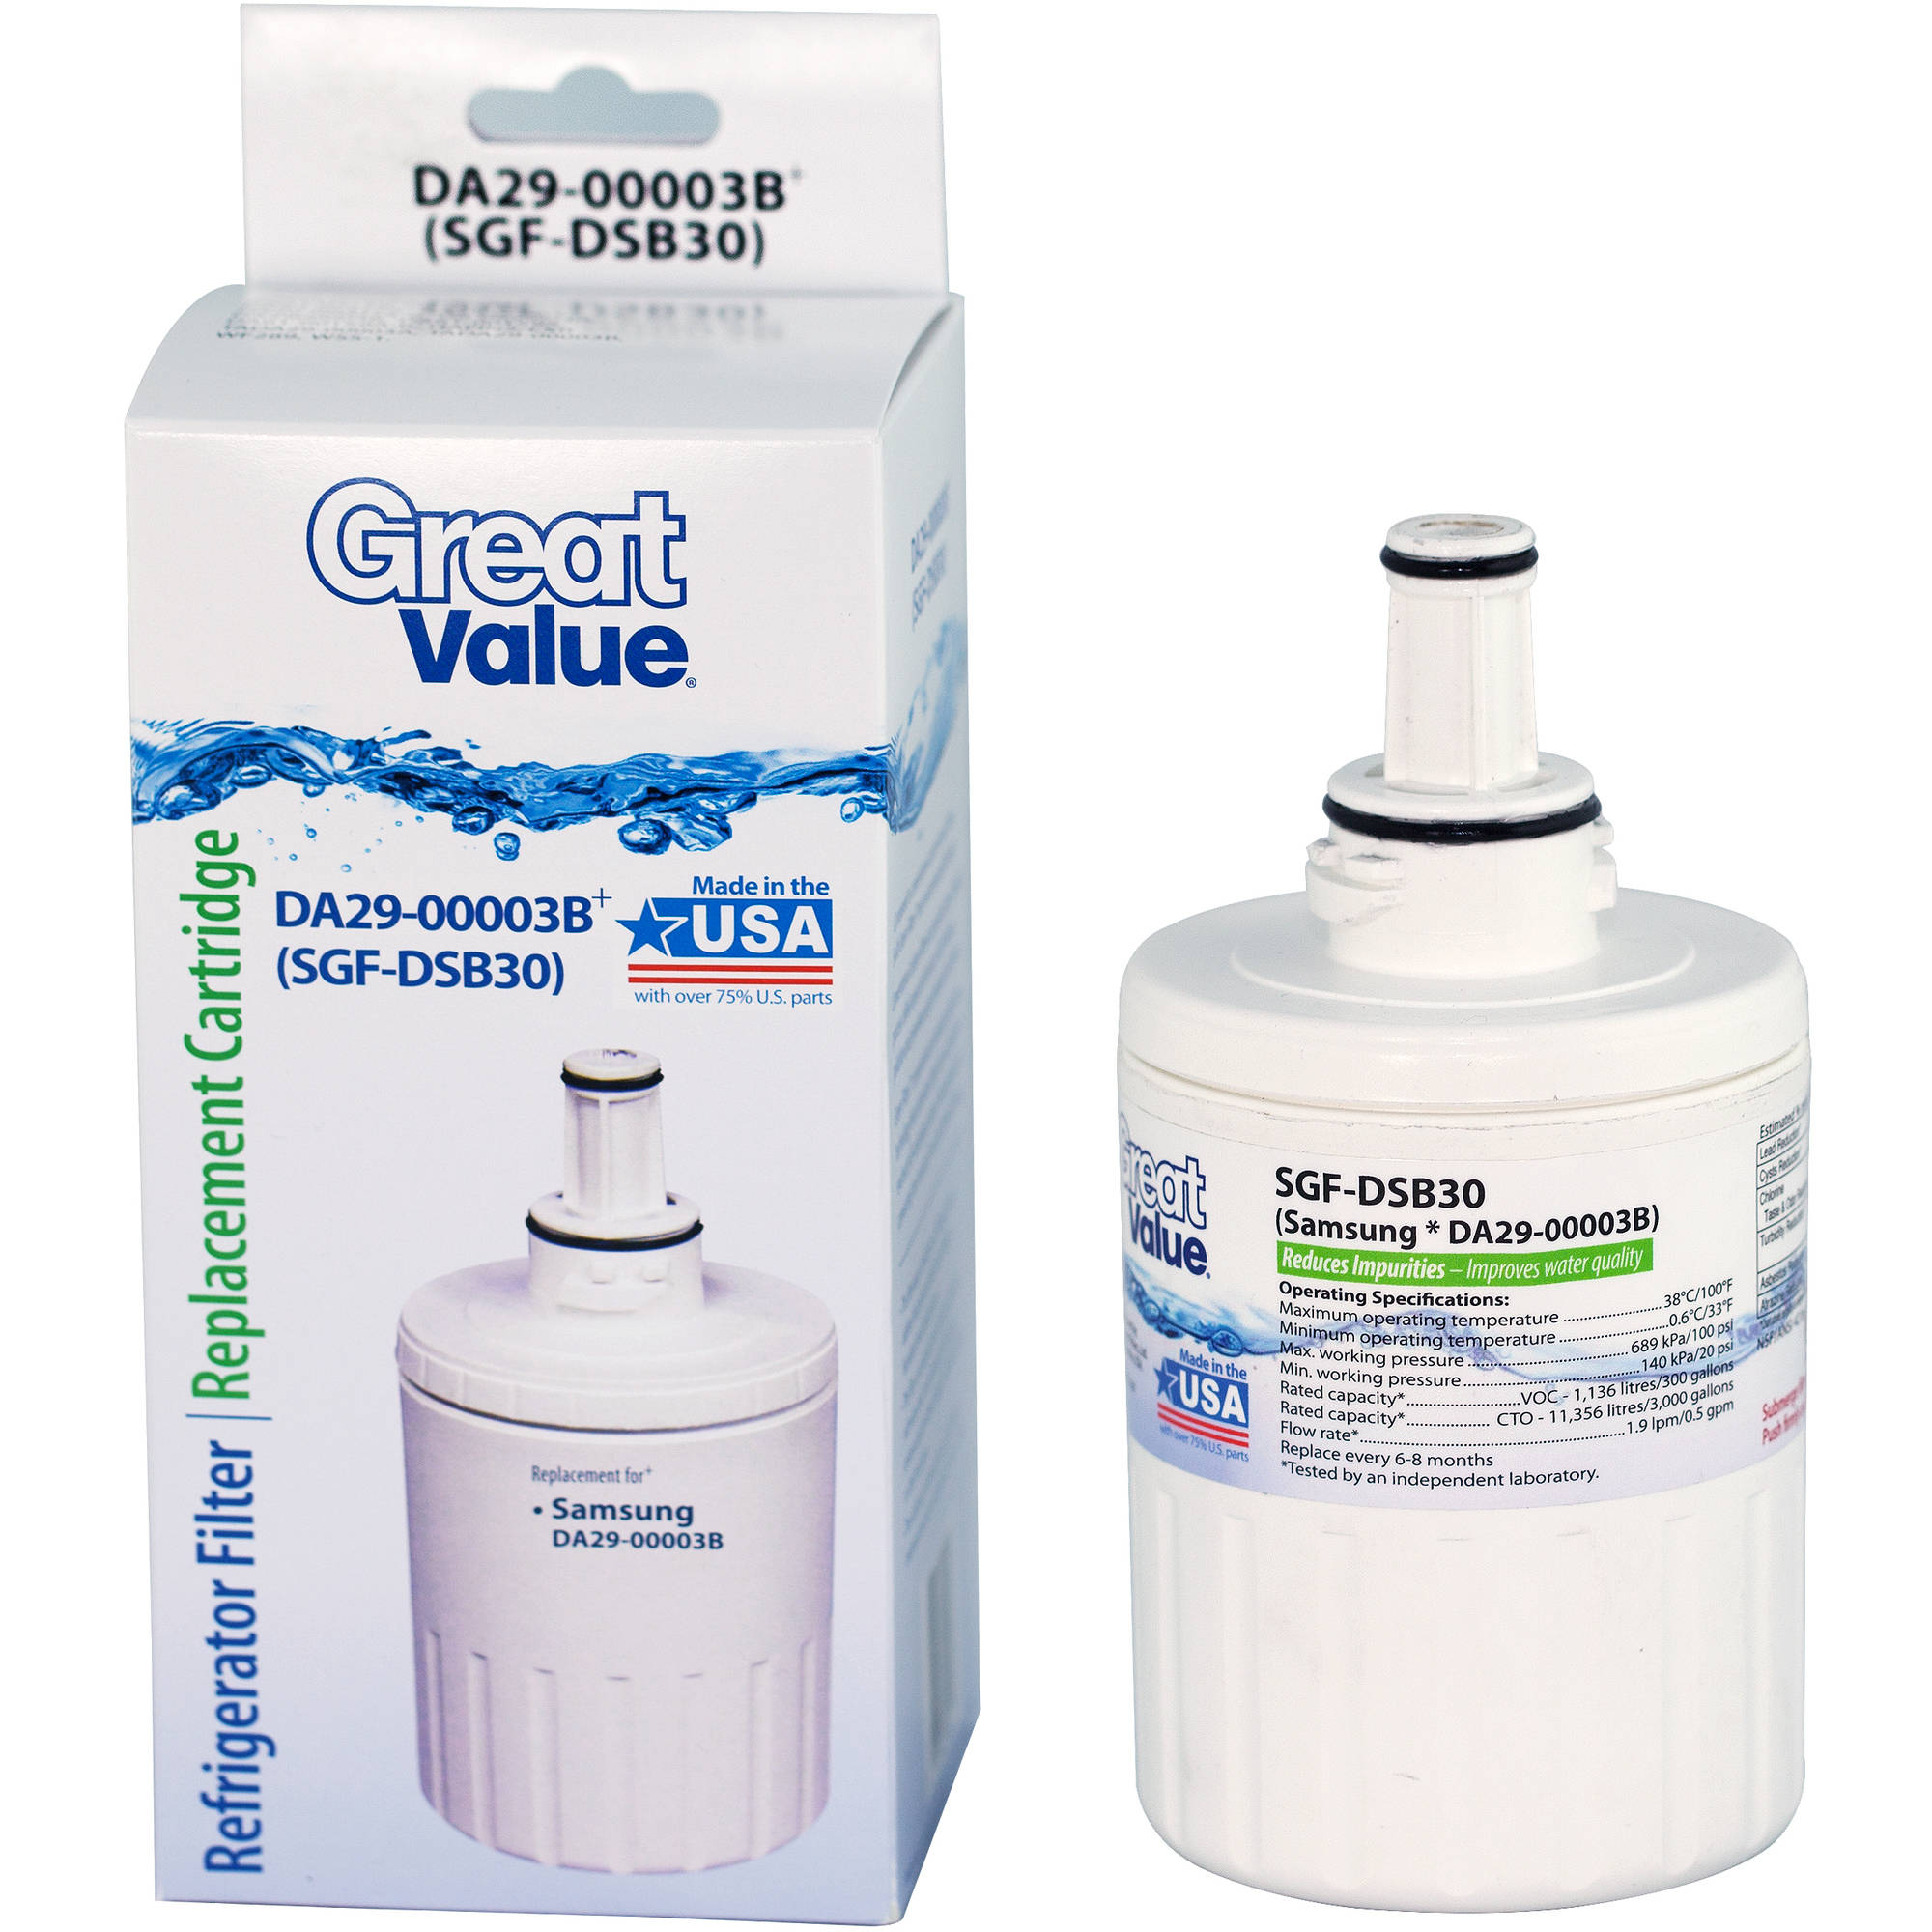 Great Value Refrigerator Filter Replacement Cartridge, DA29-00003B